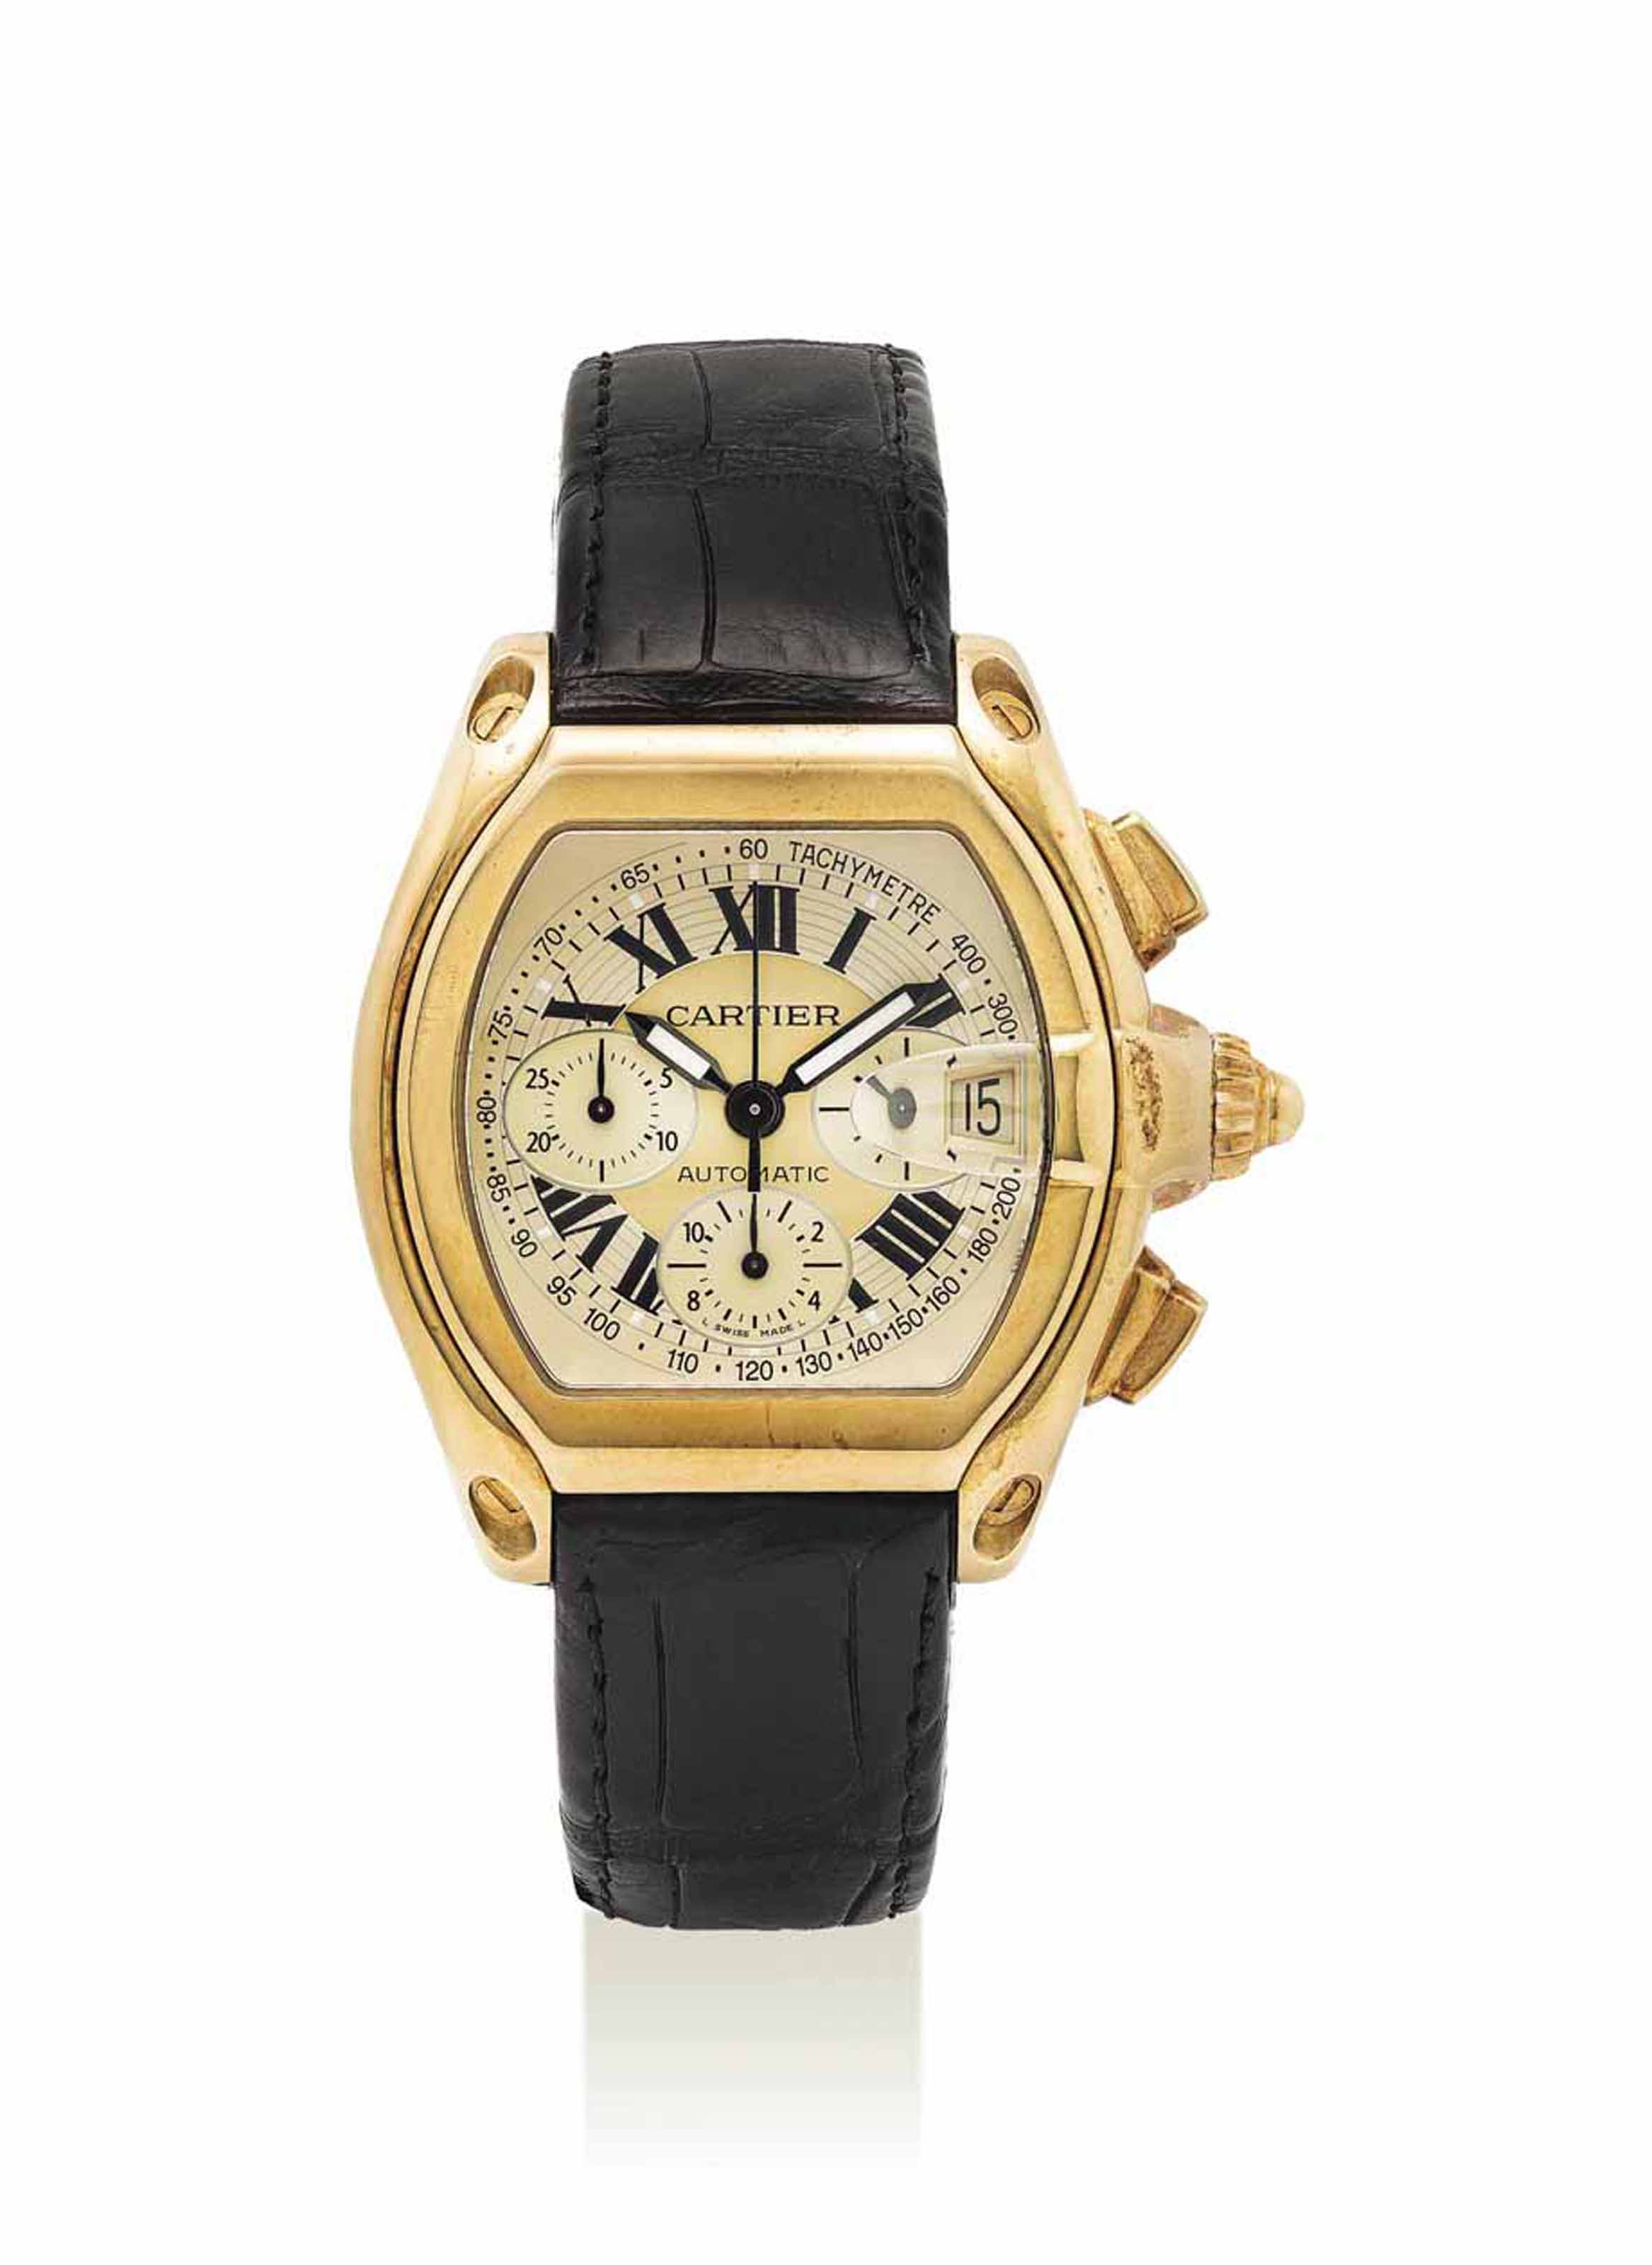 CARTIER. AN 18K GOLD AUTOMATIC CHRONOGRAPH WRISTWATCH WITH DATE